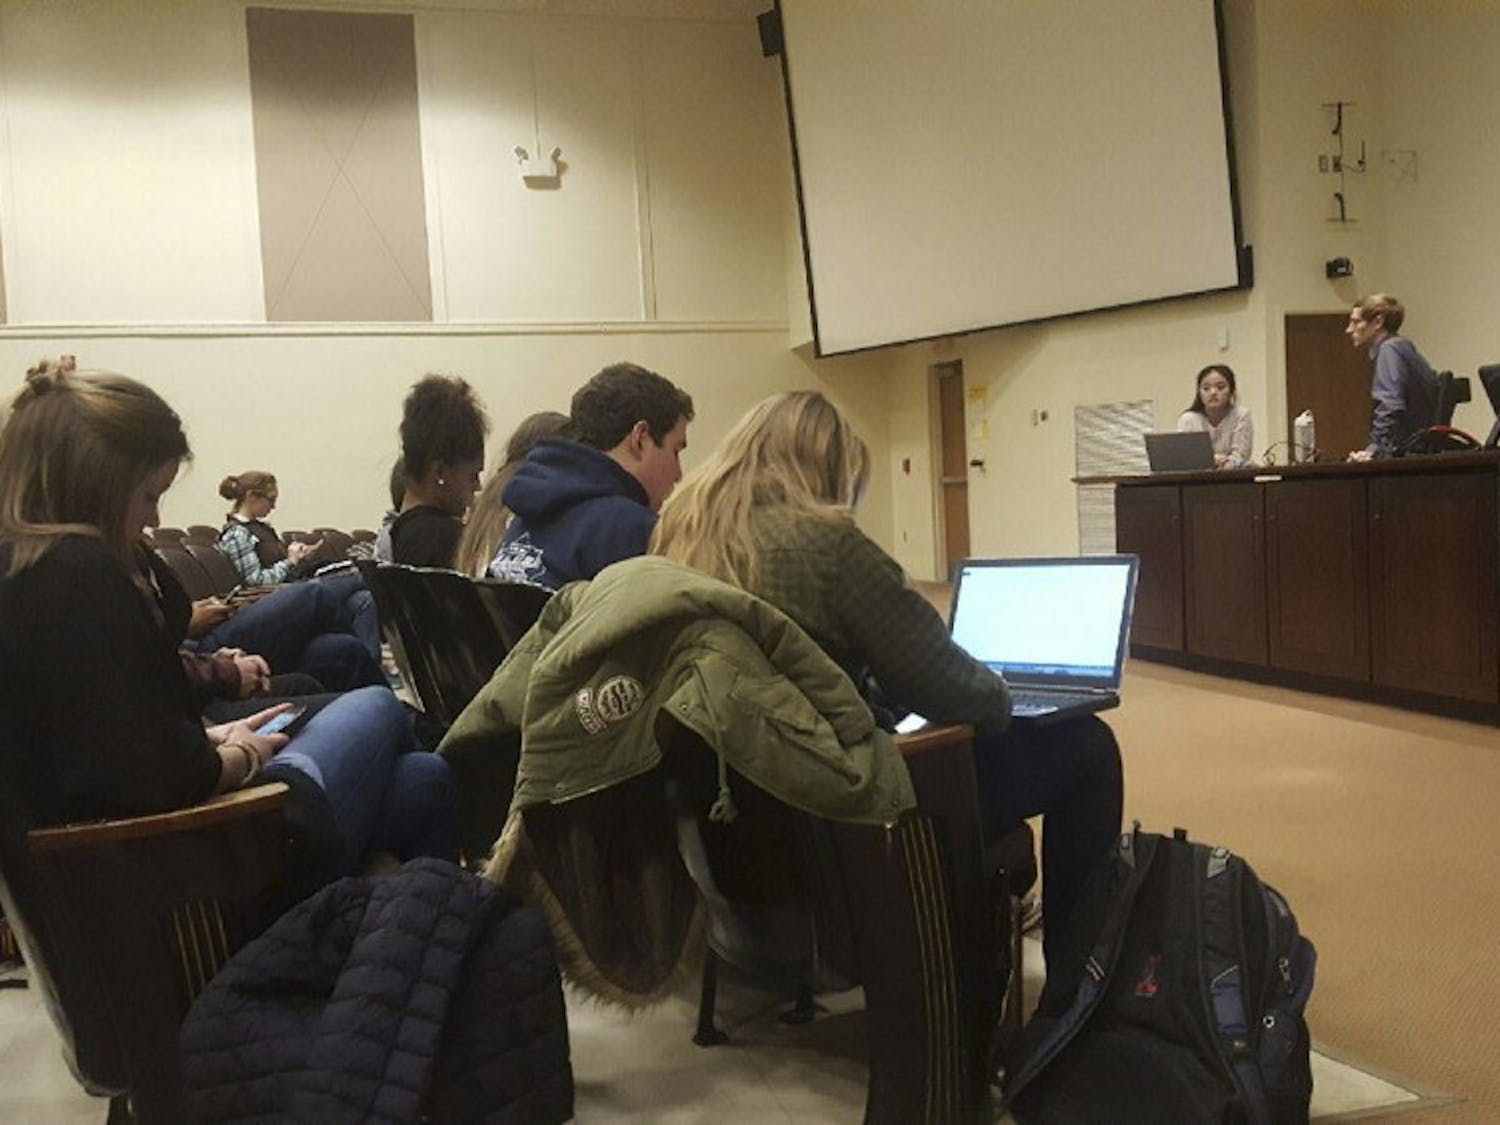 A meeting was held in Carroll Hall on Jan. 30 for students to announce their intent to run for student body president.